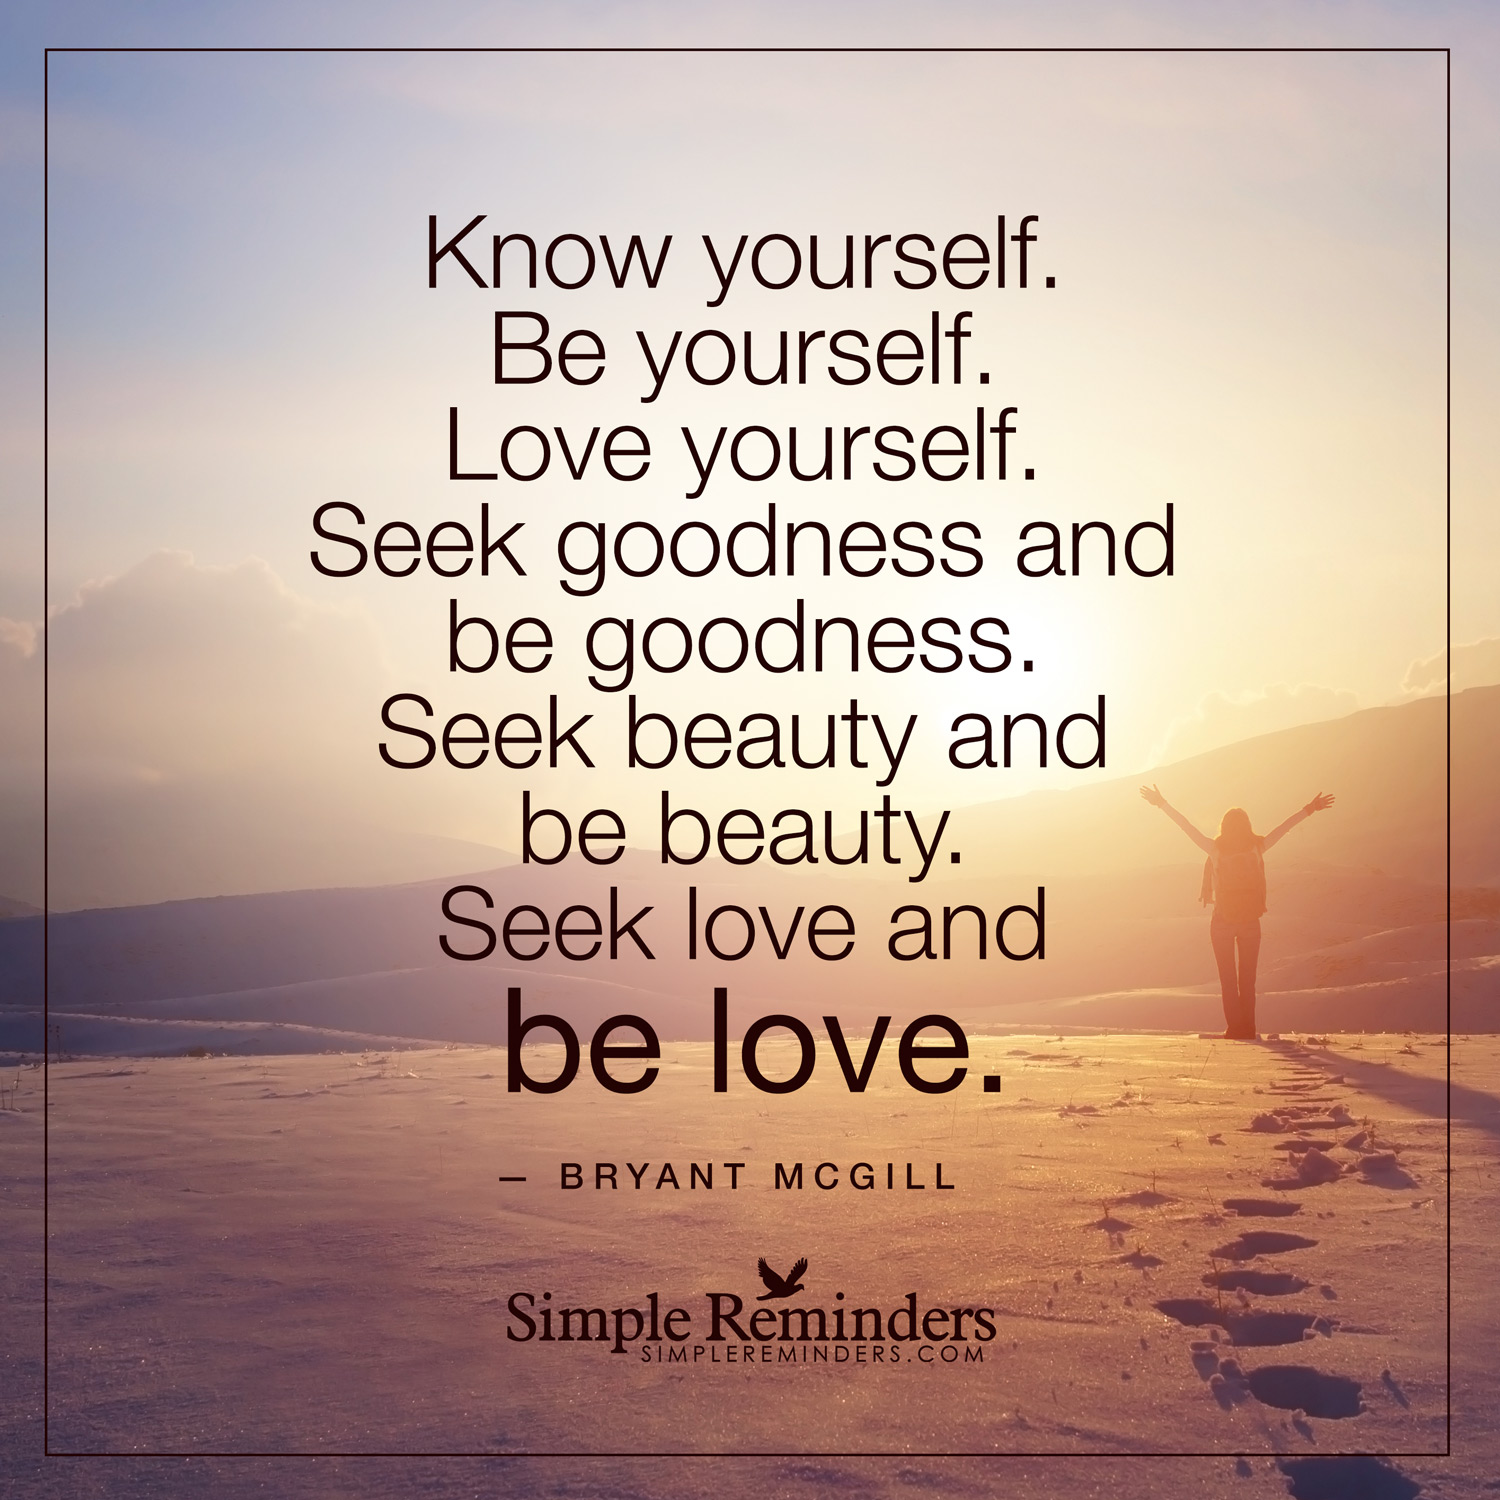 Know yourself. Be yourself. Love yourself by Bryant McGill - Simple ...